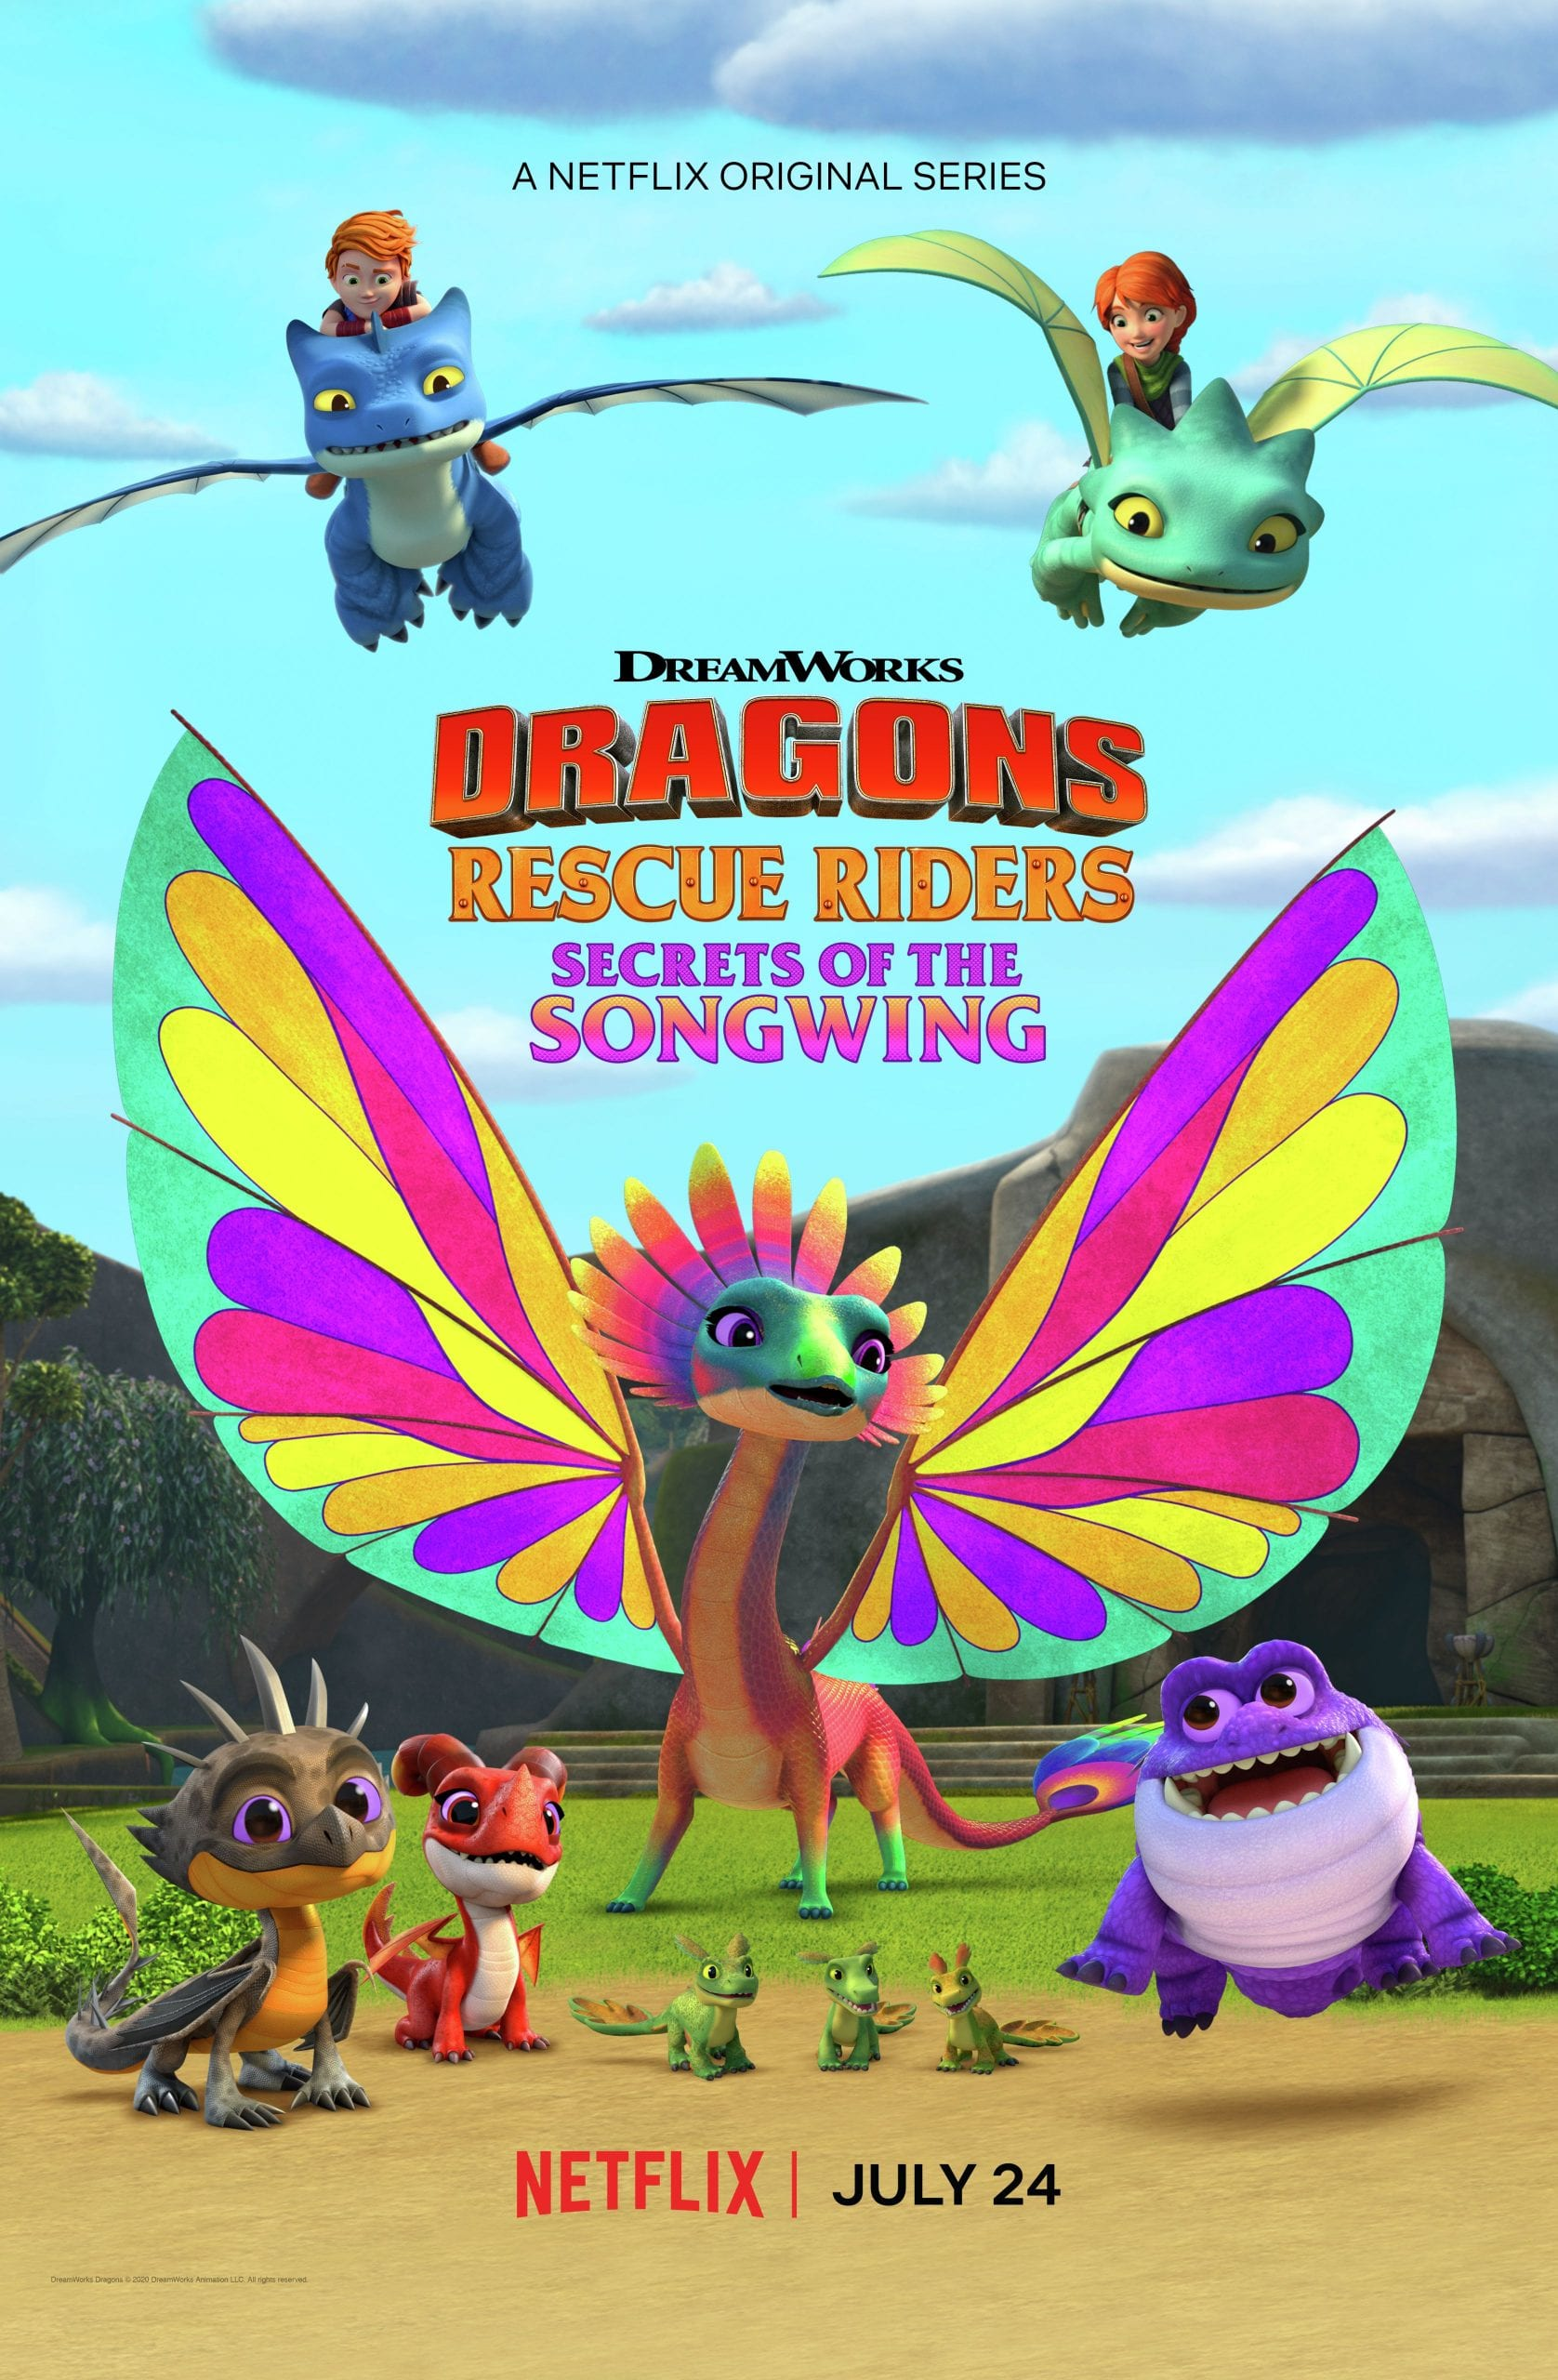 DreamWorks Dragons Rescue Riders: Secrets of the Songwing-New Trailer!!! #Netflix